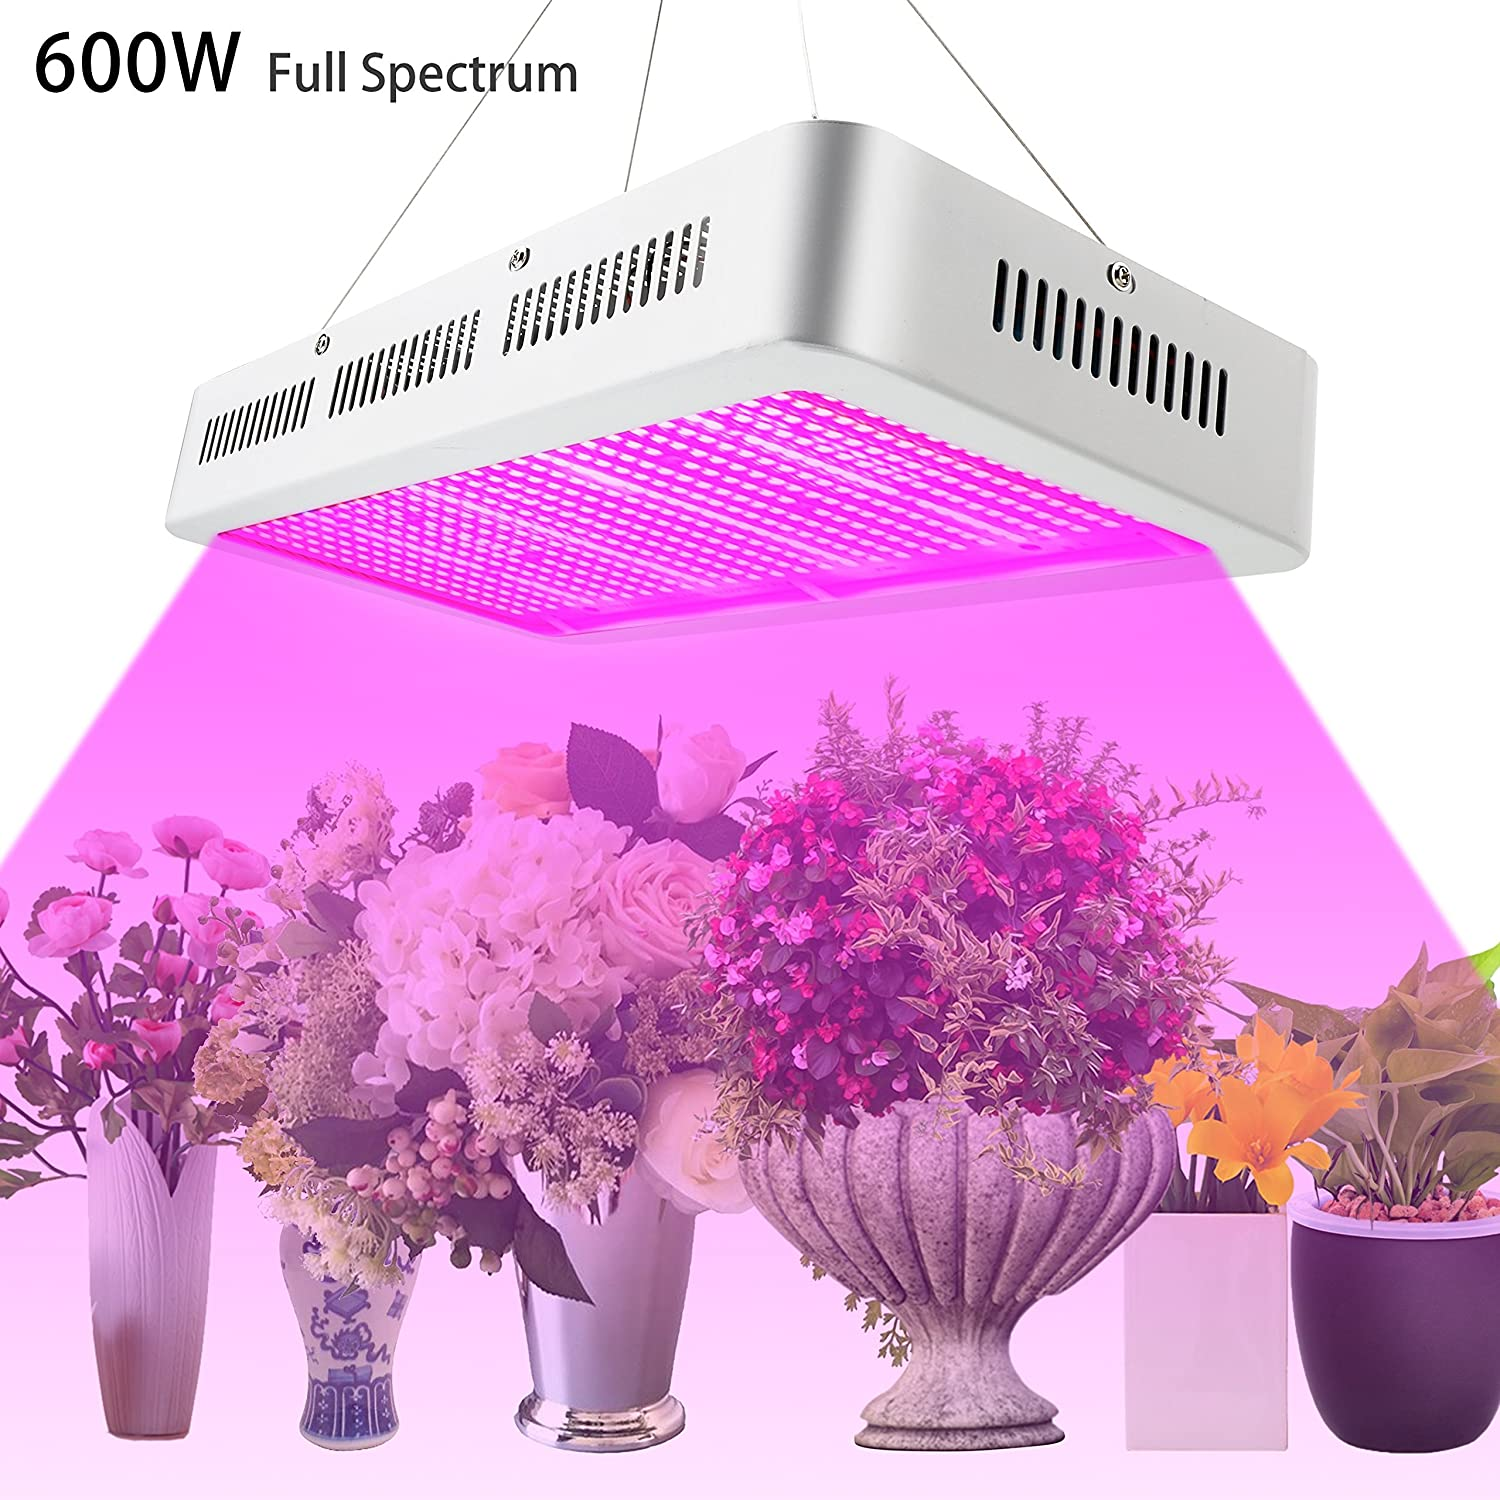 UFO LED Grow Light,Roleadro 300W 9 Band Full Spectrum Hydroponic Growing Lamp Light with UV IR Light for Indoor Plants Flowers and Vegetables